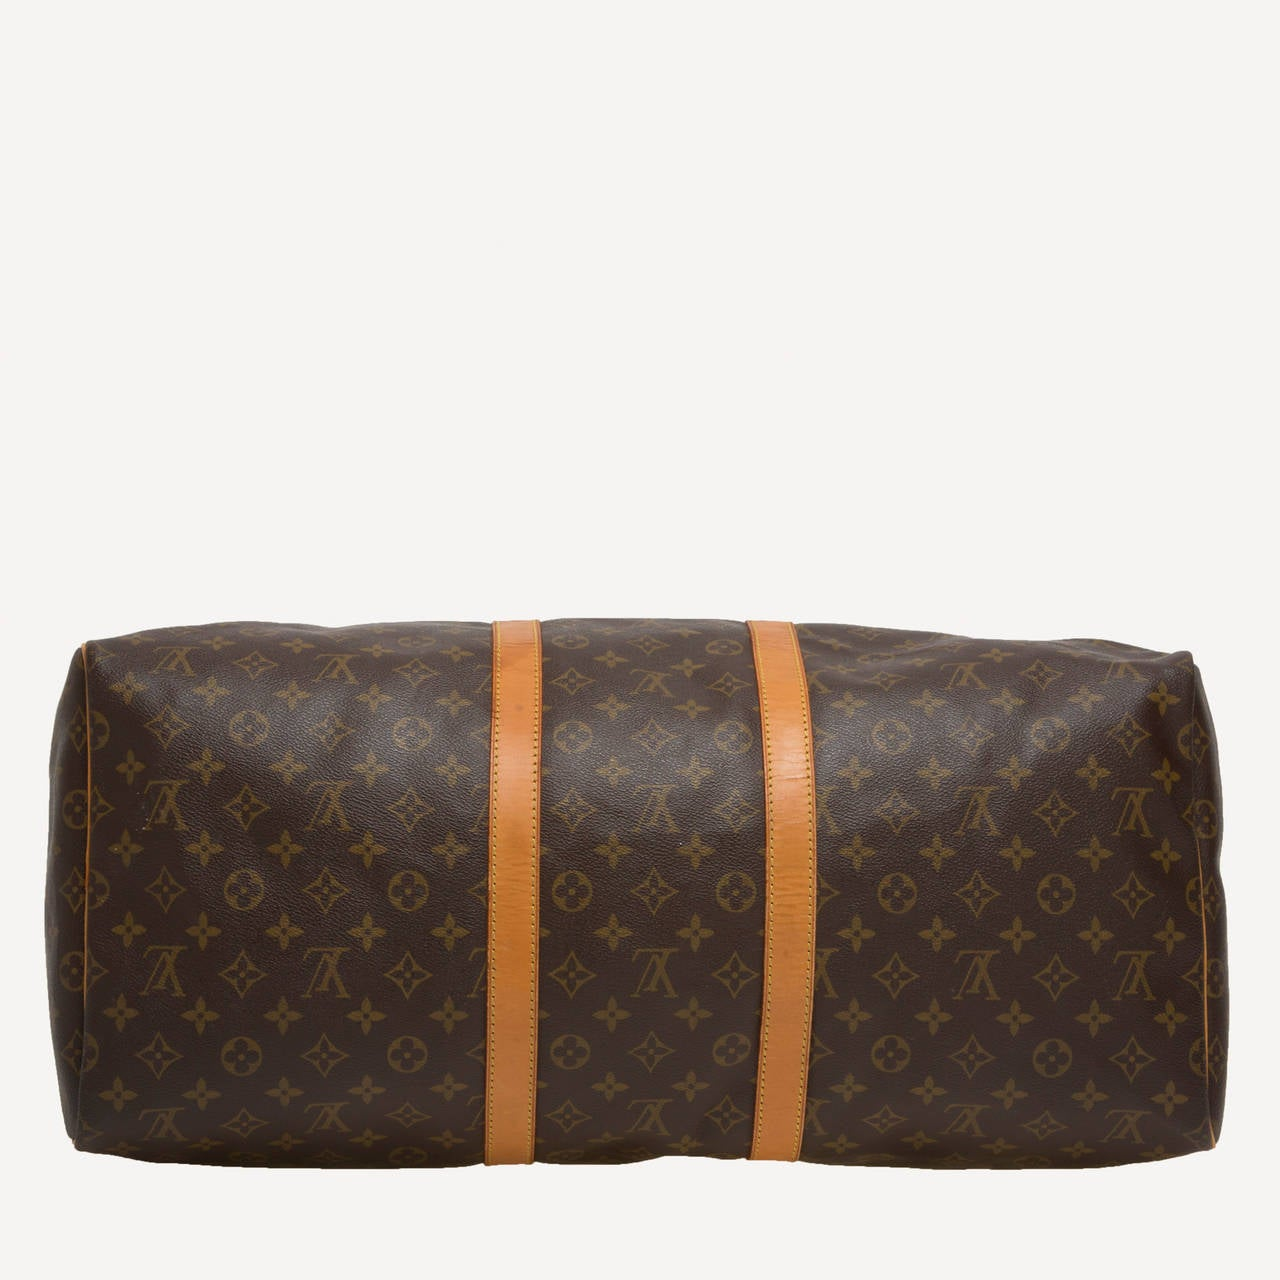 Louis Vuitton Keepall Monogram Canvas 55 at 1stdibs